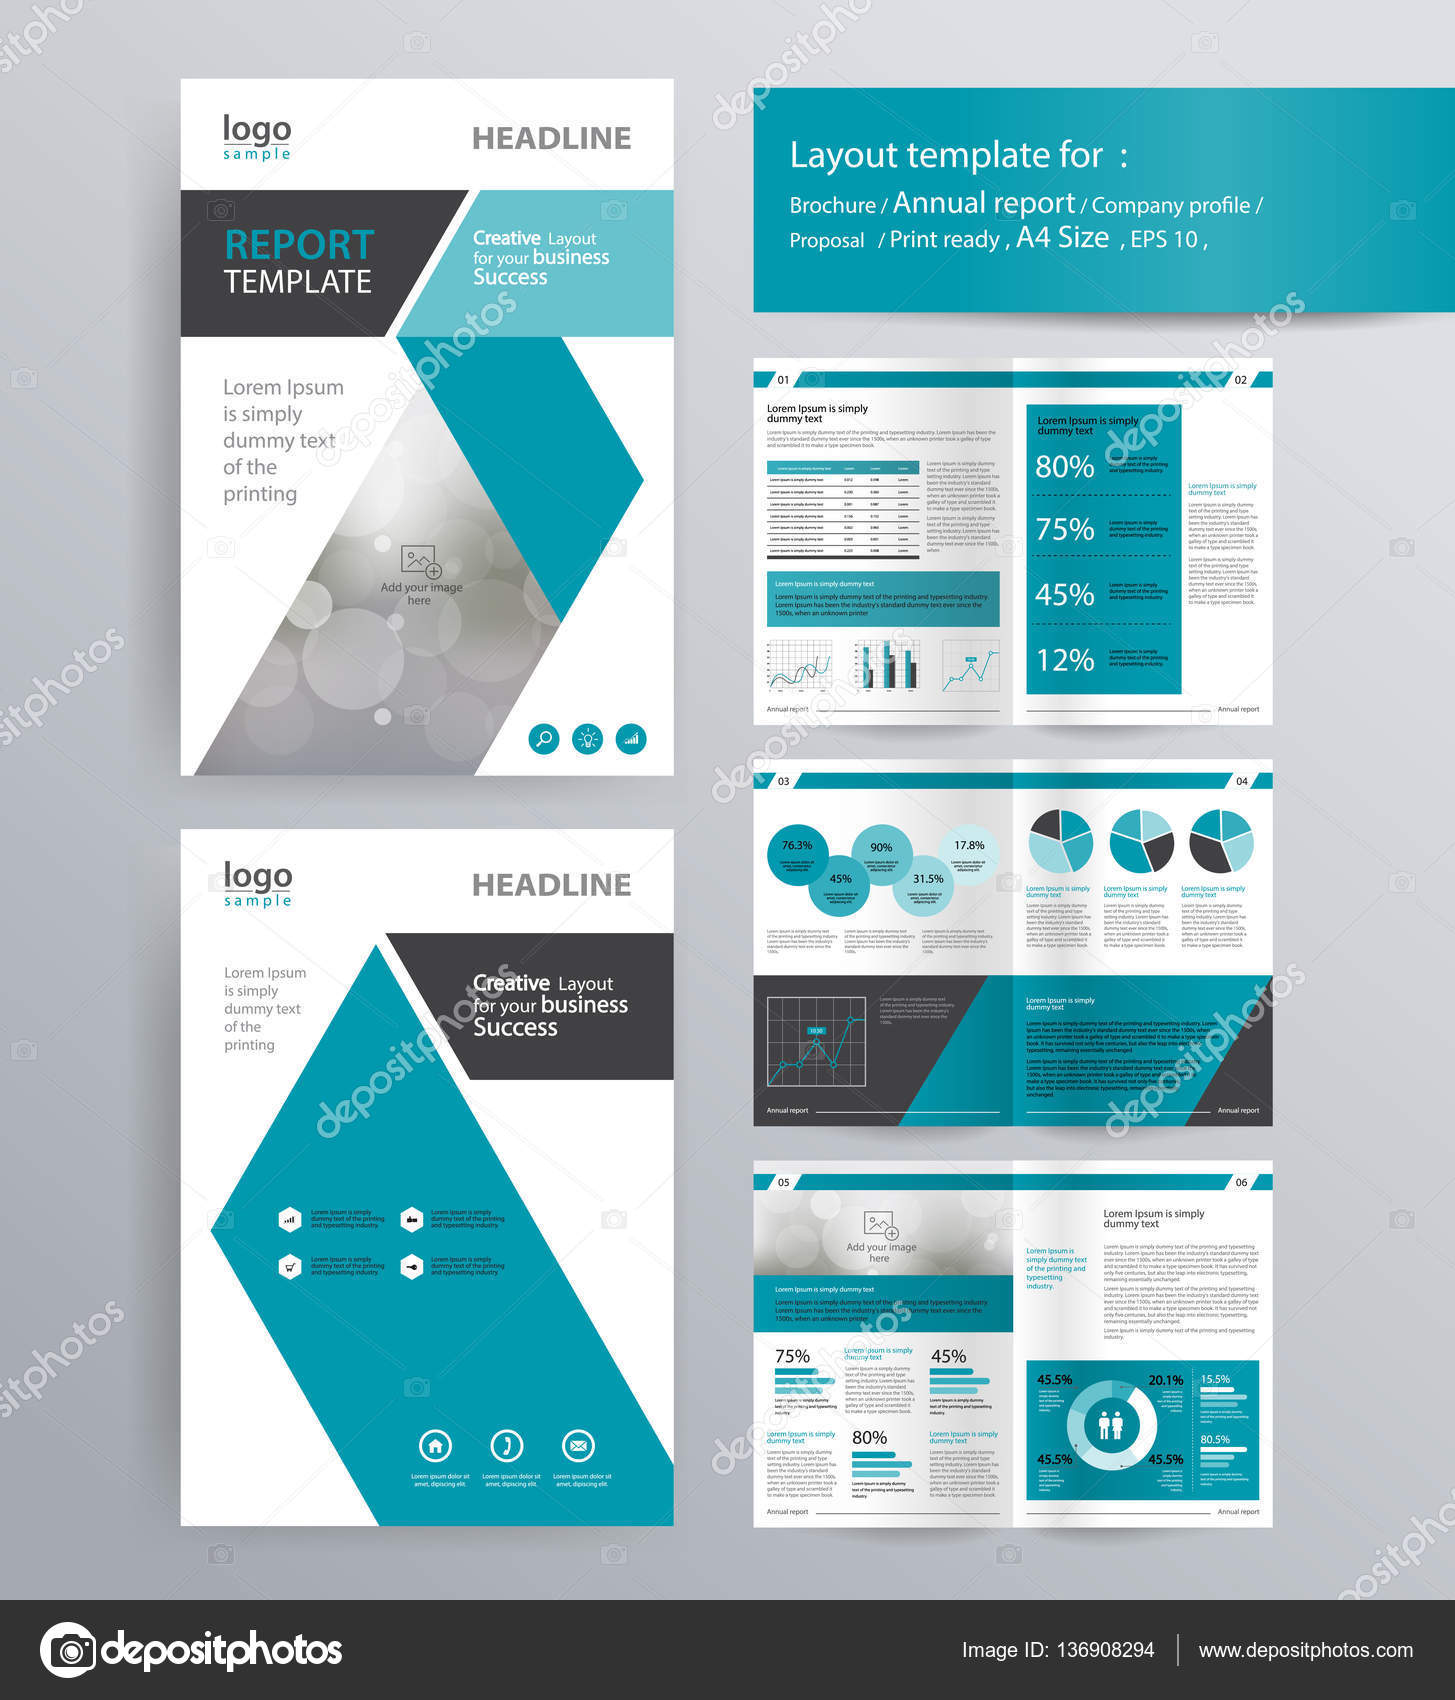 Attractive Company Profile, Annual Report, Brochure, And Flyer Layout Template. With  Info Graphic